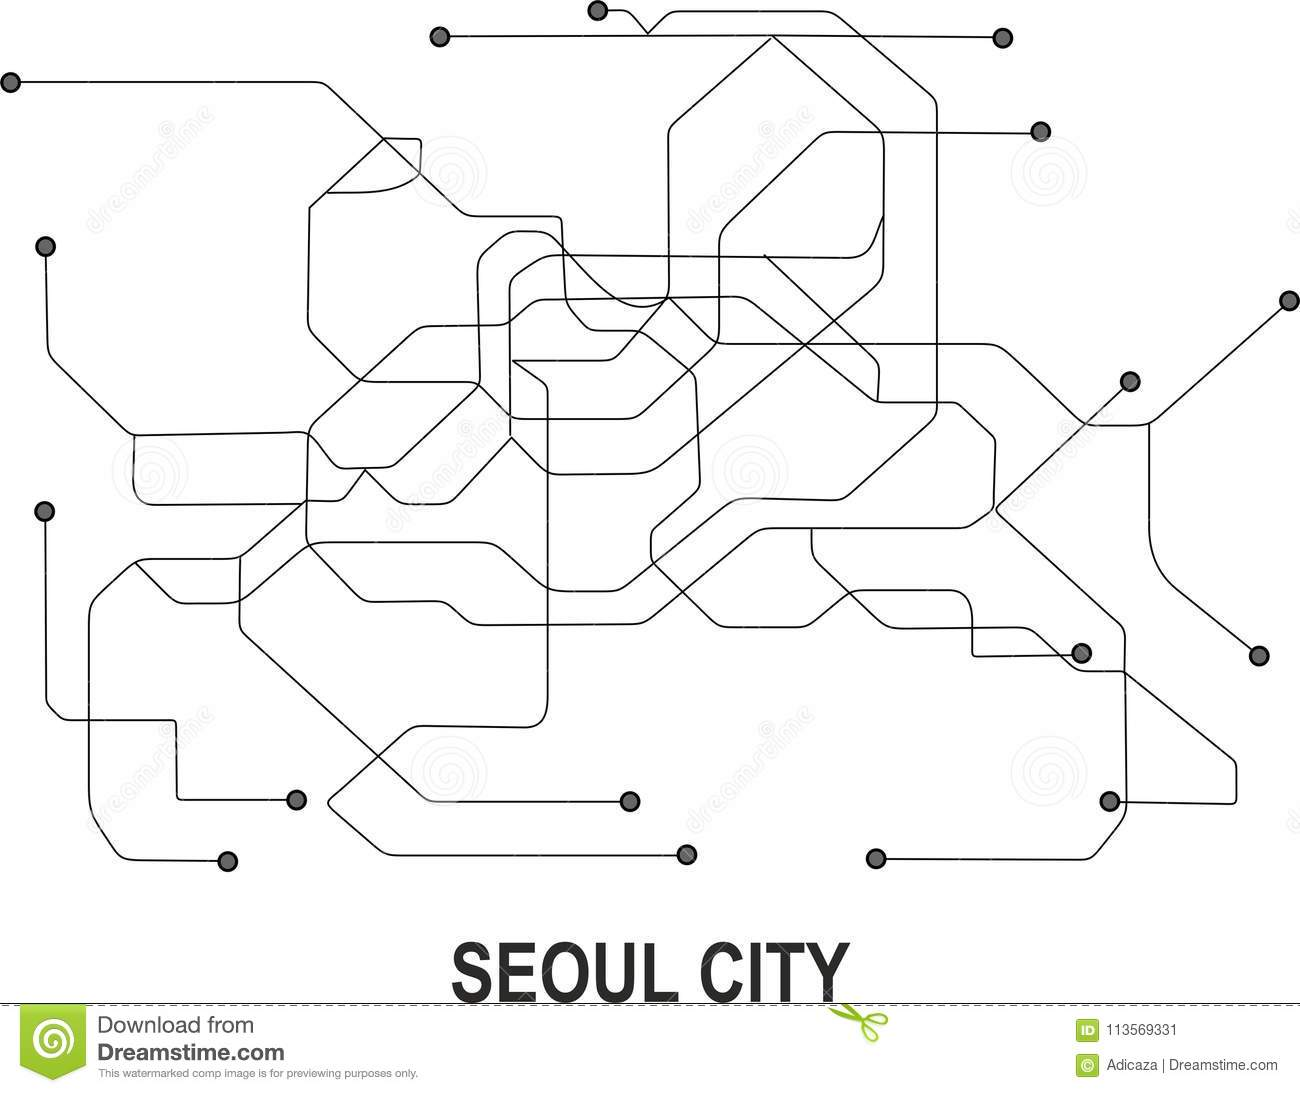 Black White Subway Map.Seoul City Map Stock Vector Illustration Of Format 113569331